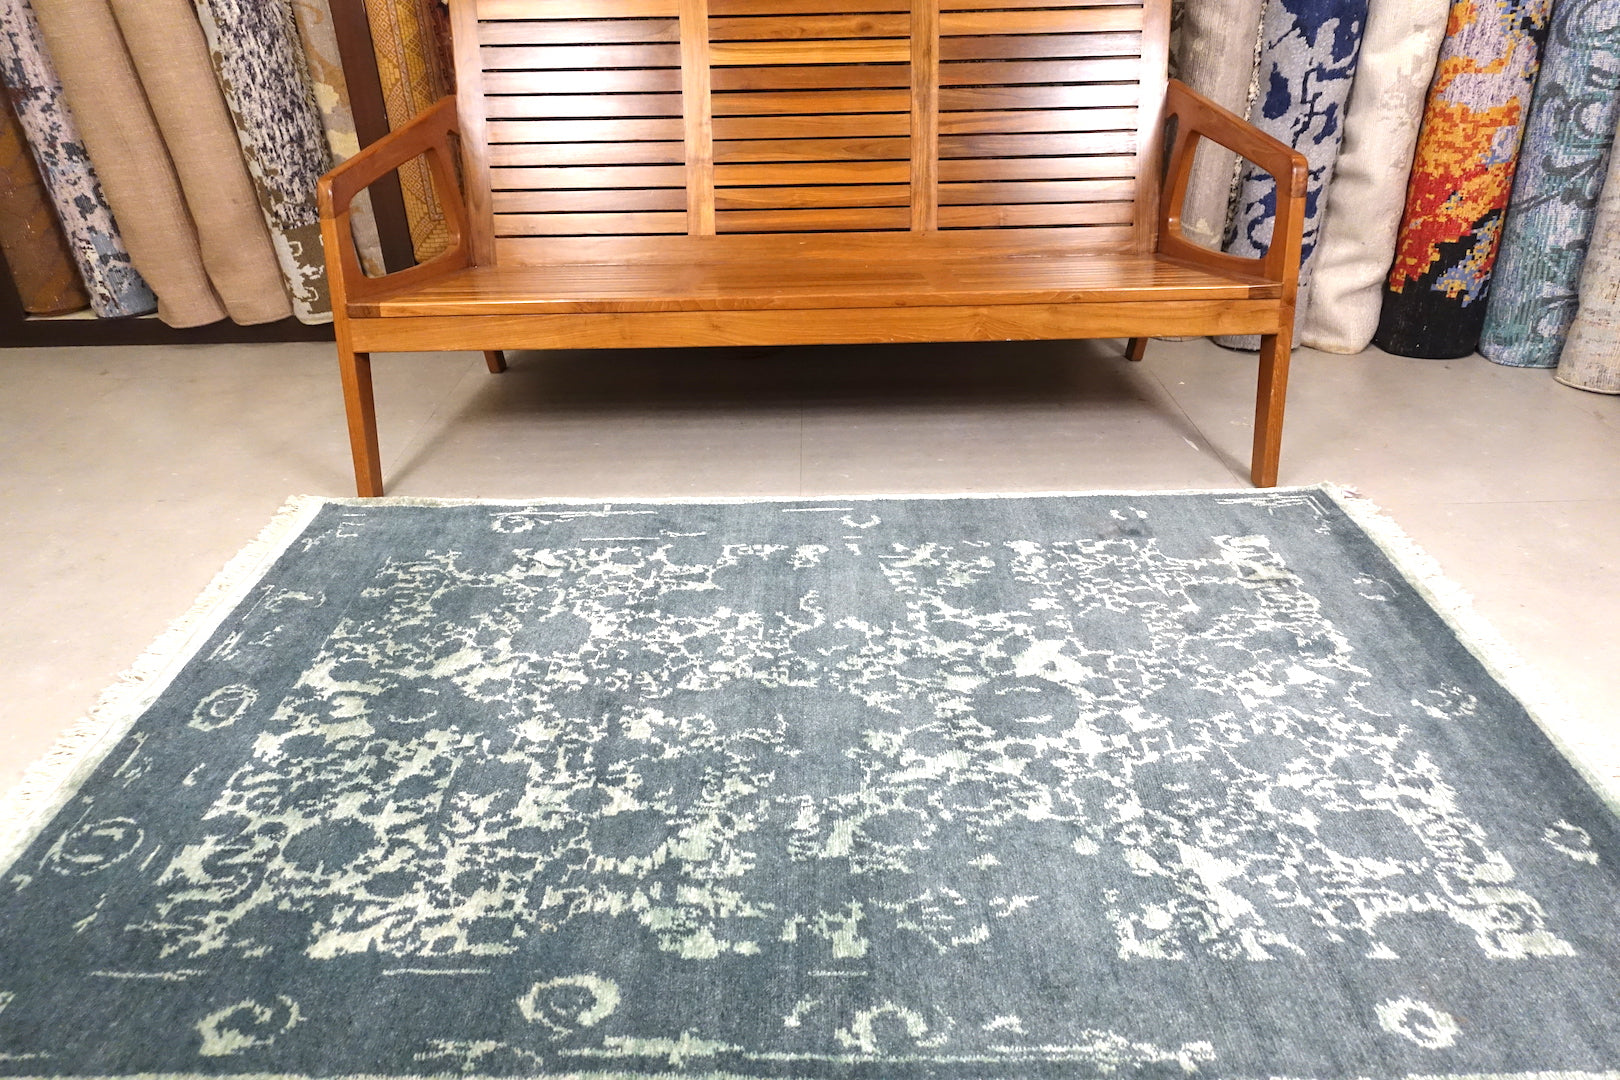 A 6 feet by 4 feet erased rug with floral pattern.